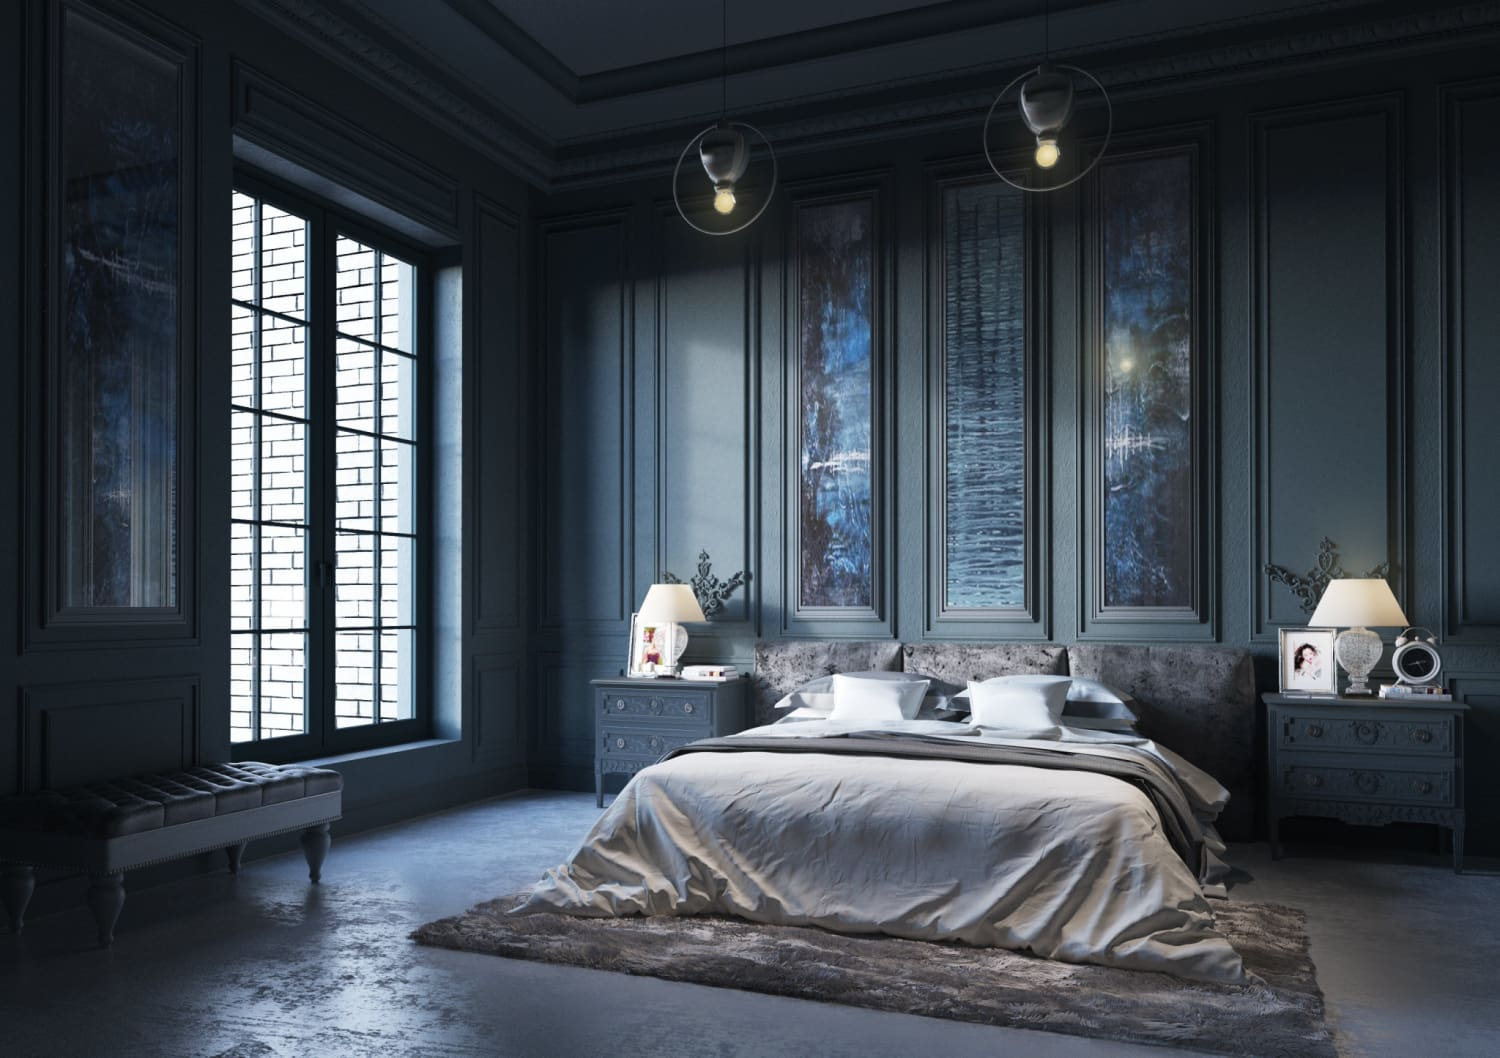 INTERIORS INSPIRATION: Seductive sleeping spaces